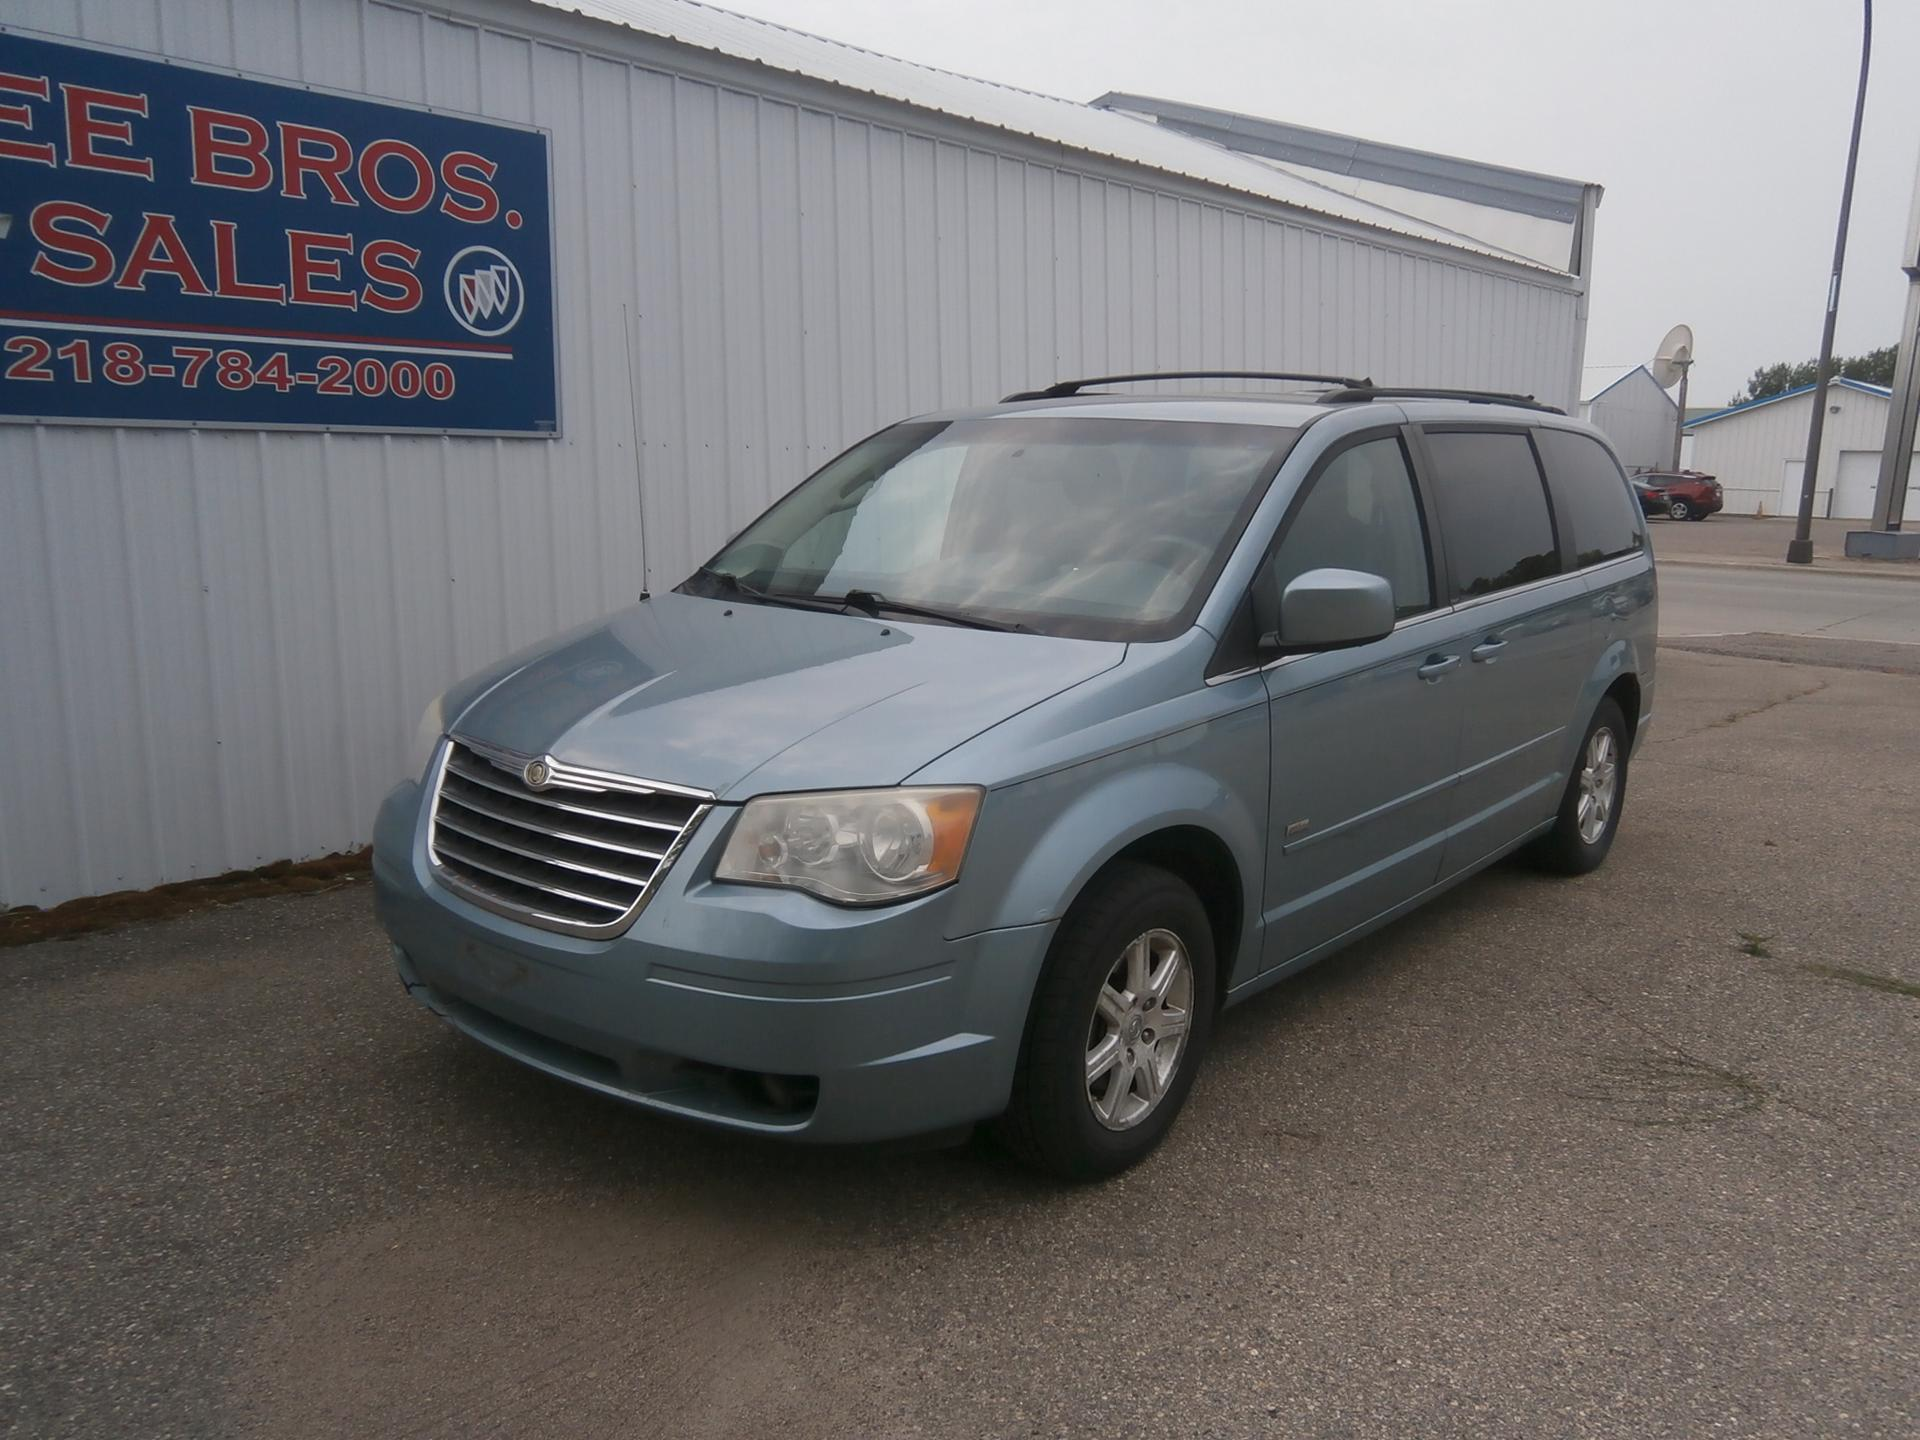 Used 2003 Chrysler Town & Country Limited with VIN 2C8GP64L43R120460 for sale in Ada, Minnesota